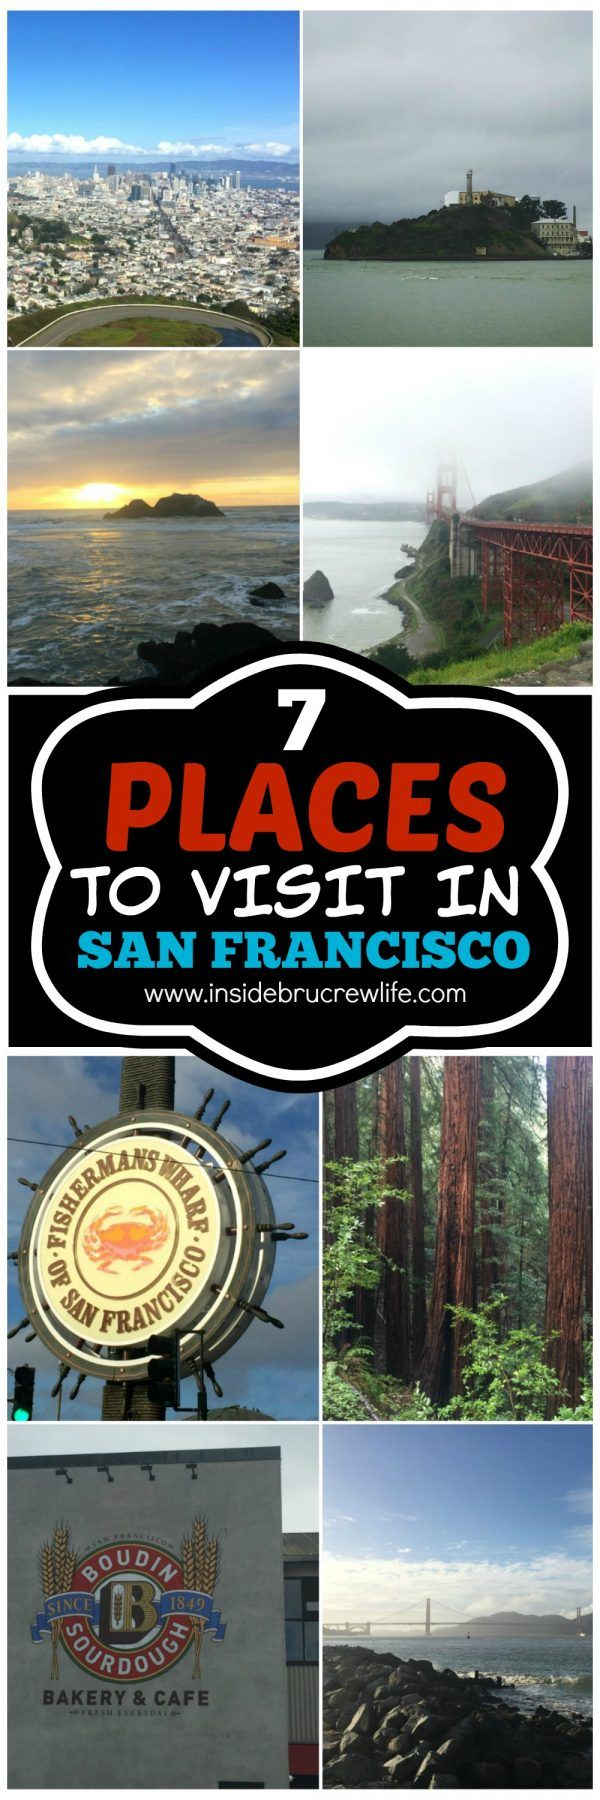 Seven Places to Visit in San Francisco | Inside BruCrew Life | Bloglovin'